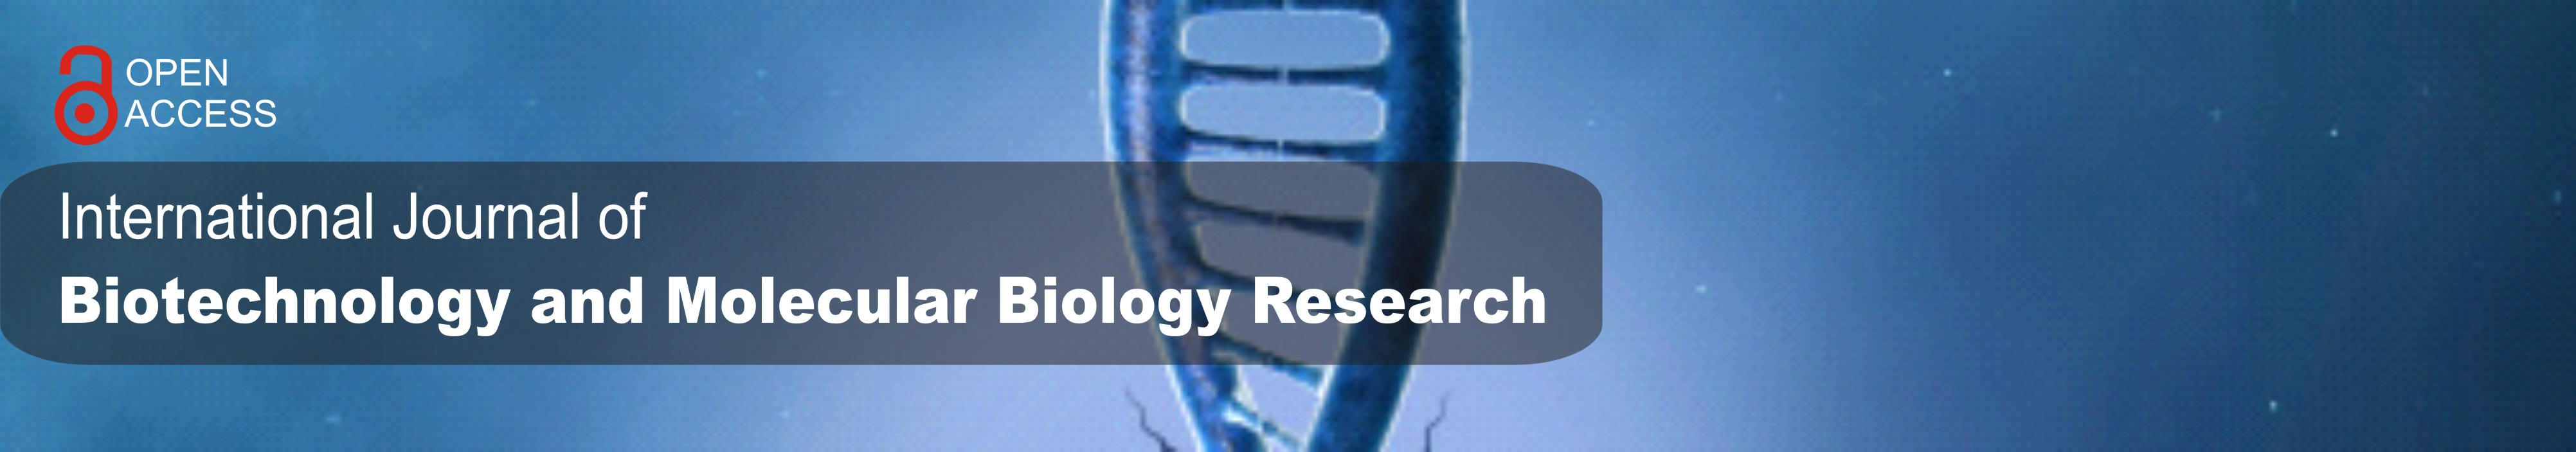 International Journal of Biotechnology and Molecular Biology Research